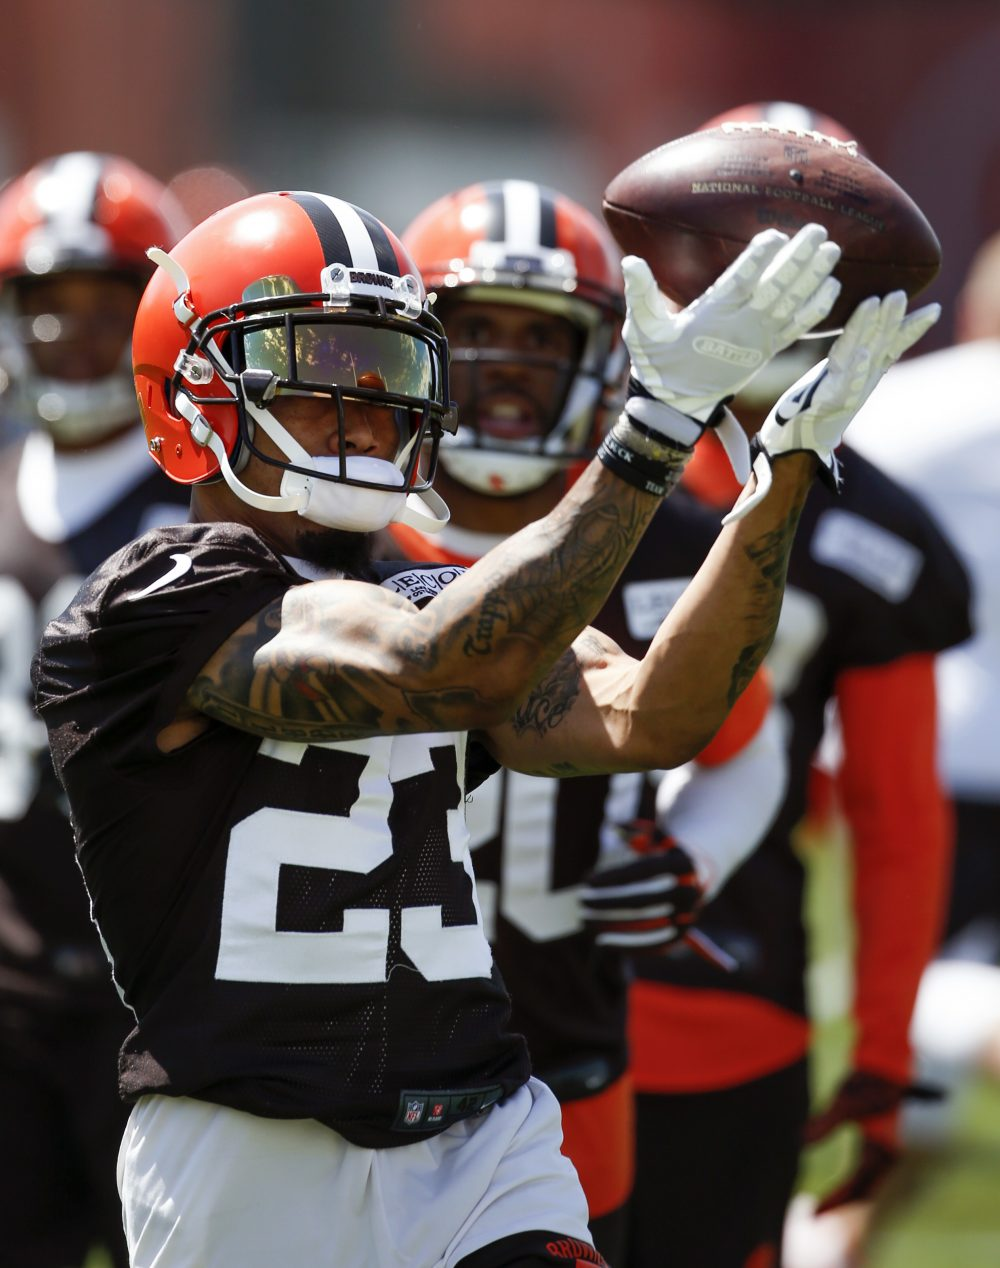 Joe Haden quickly signs with Steelers after Browns cut him will